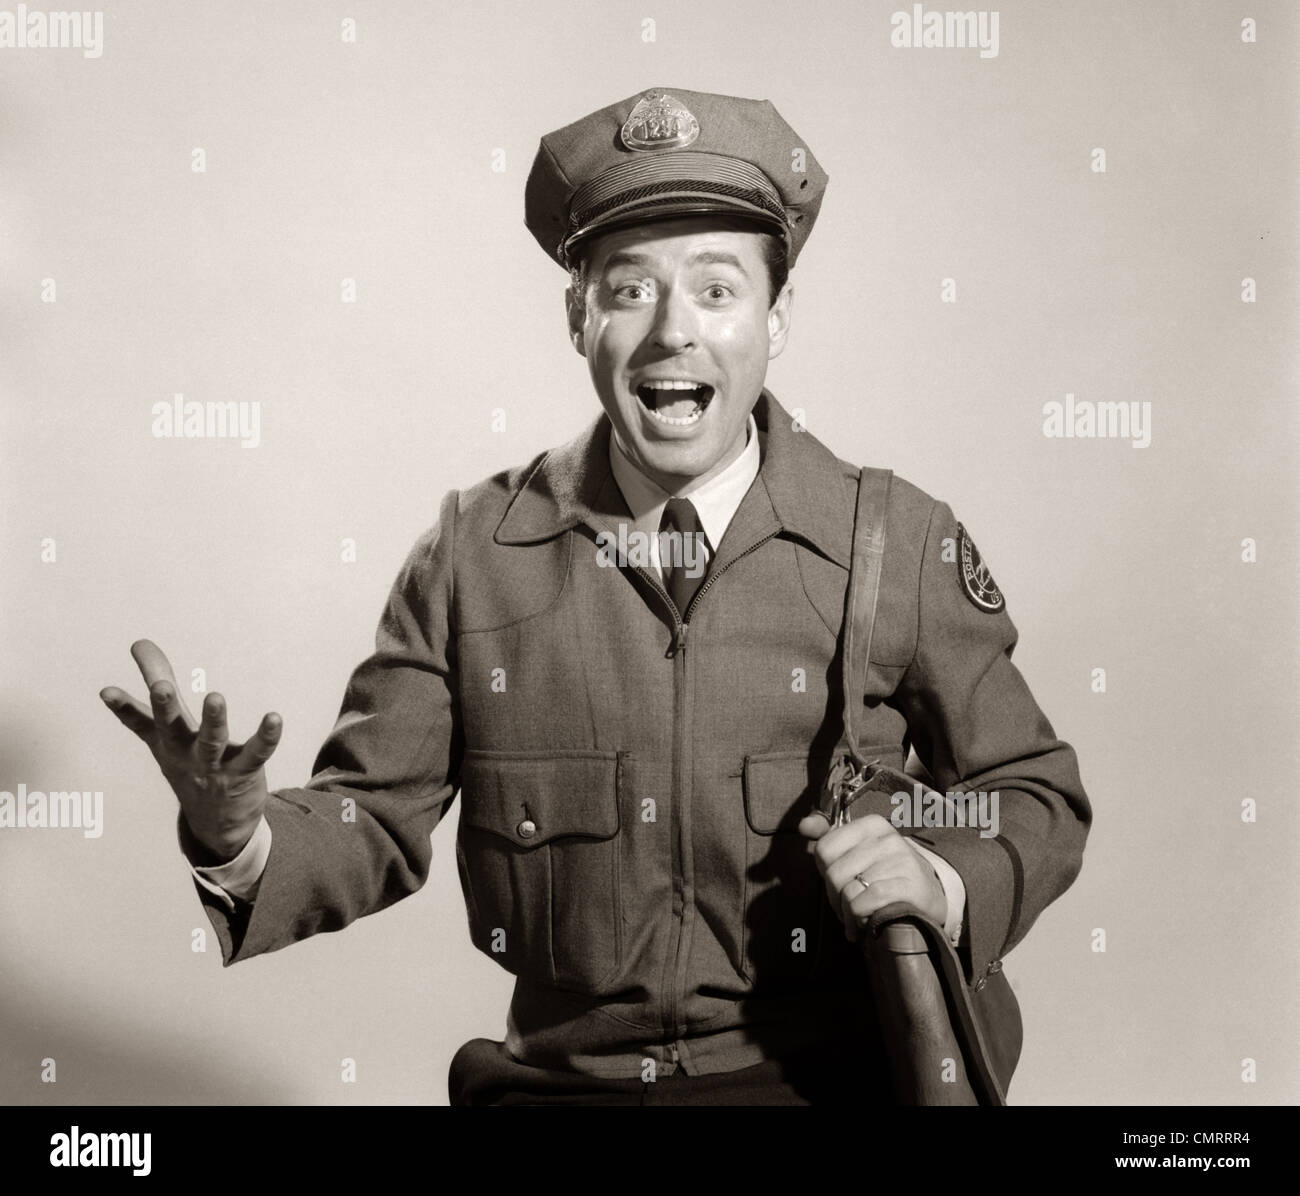 1960 STUDIO PORTRAIT OF HAPPY MAN POSTMAN MAILMAN LOOKING AT CAMERA Photo Stock